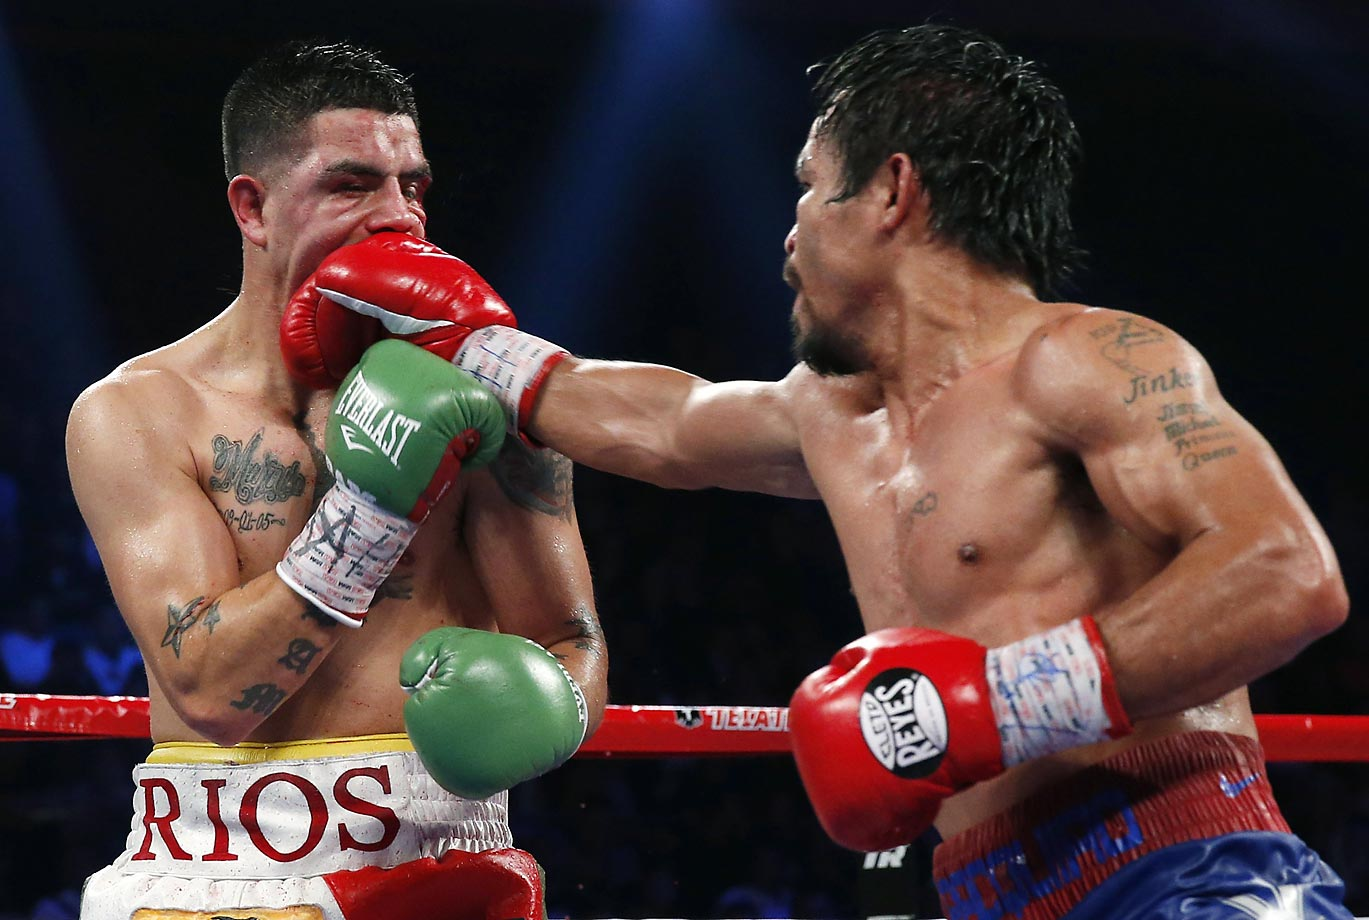 Manny Pacquiao lands a right to Brandon Rios during their WBO international welterweight title fight Nov. 24, 2013, in Macau, China. Pacquiao defeated Rios by unanimous decision to end a two fight losing streak.